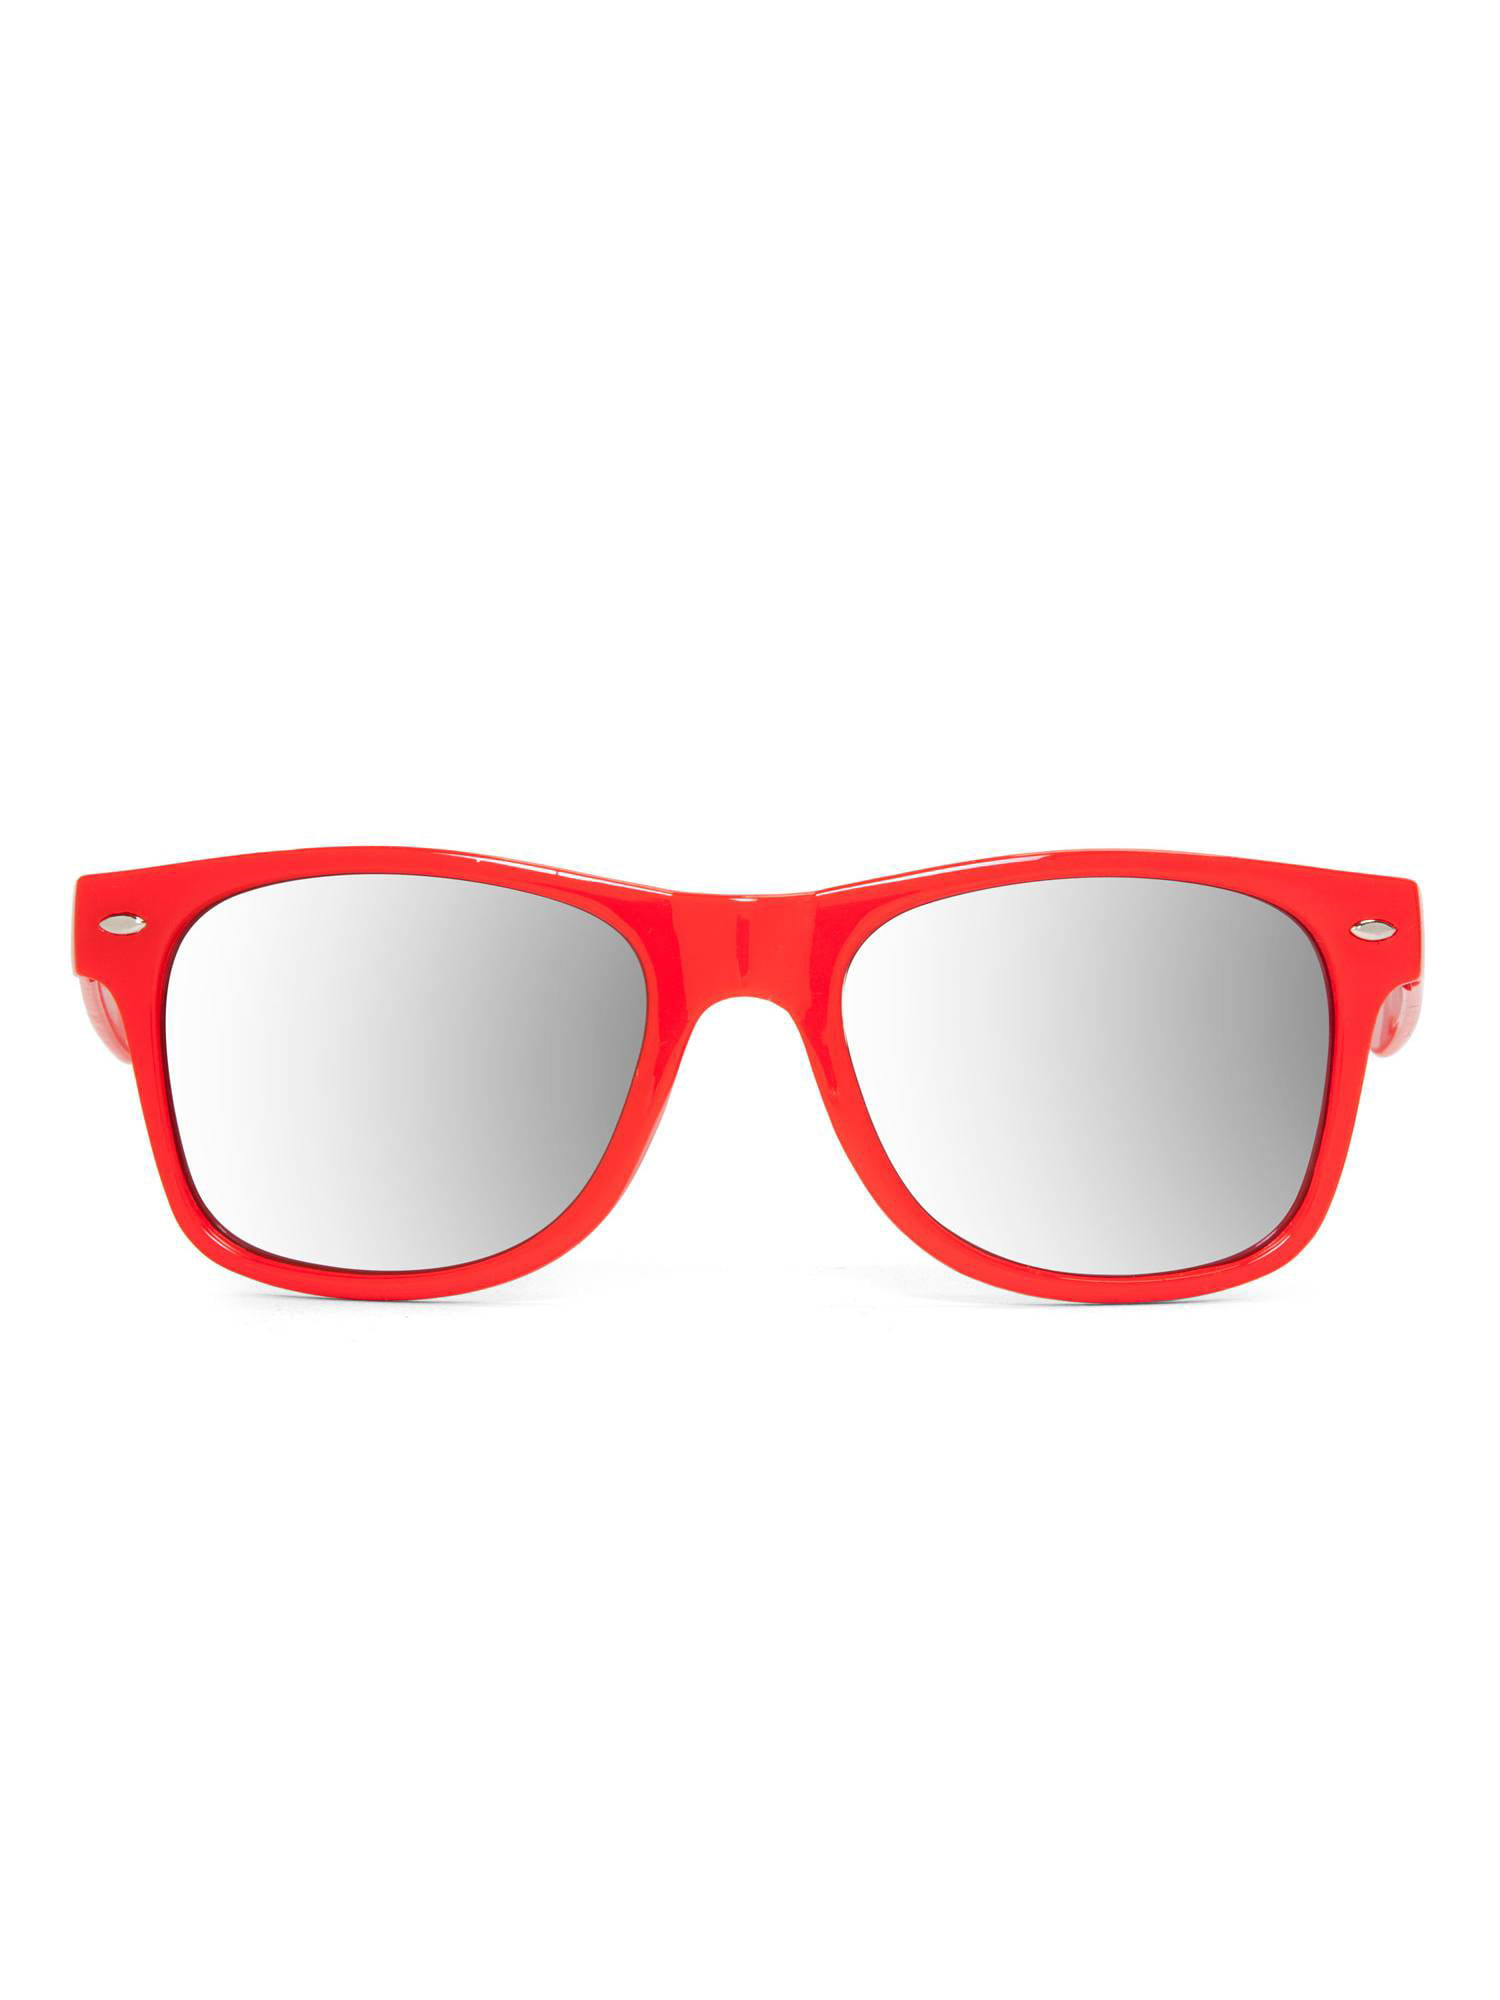 70e02ec73c6d Solid color horn rimmed style mirror lens sunglasses red jpg 1500x2000 Red  rimmed glasses